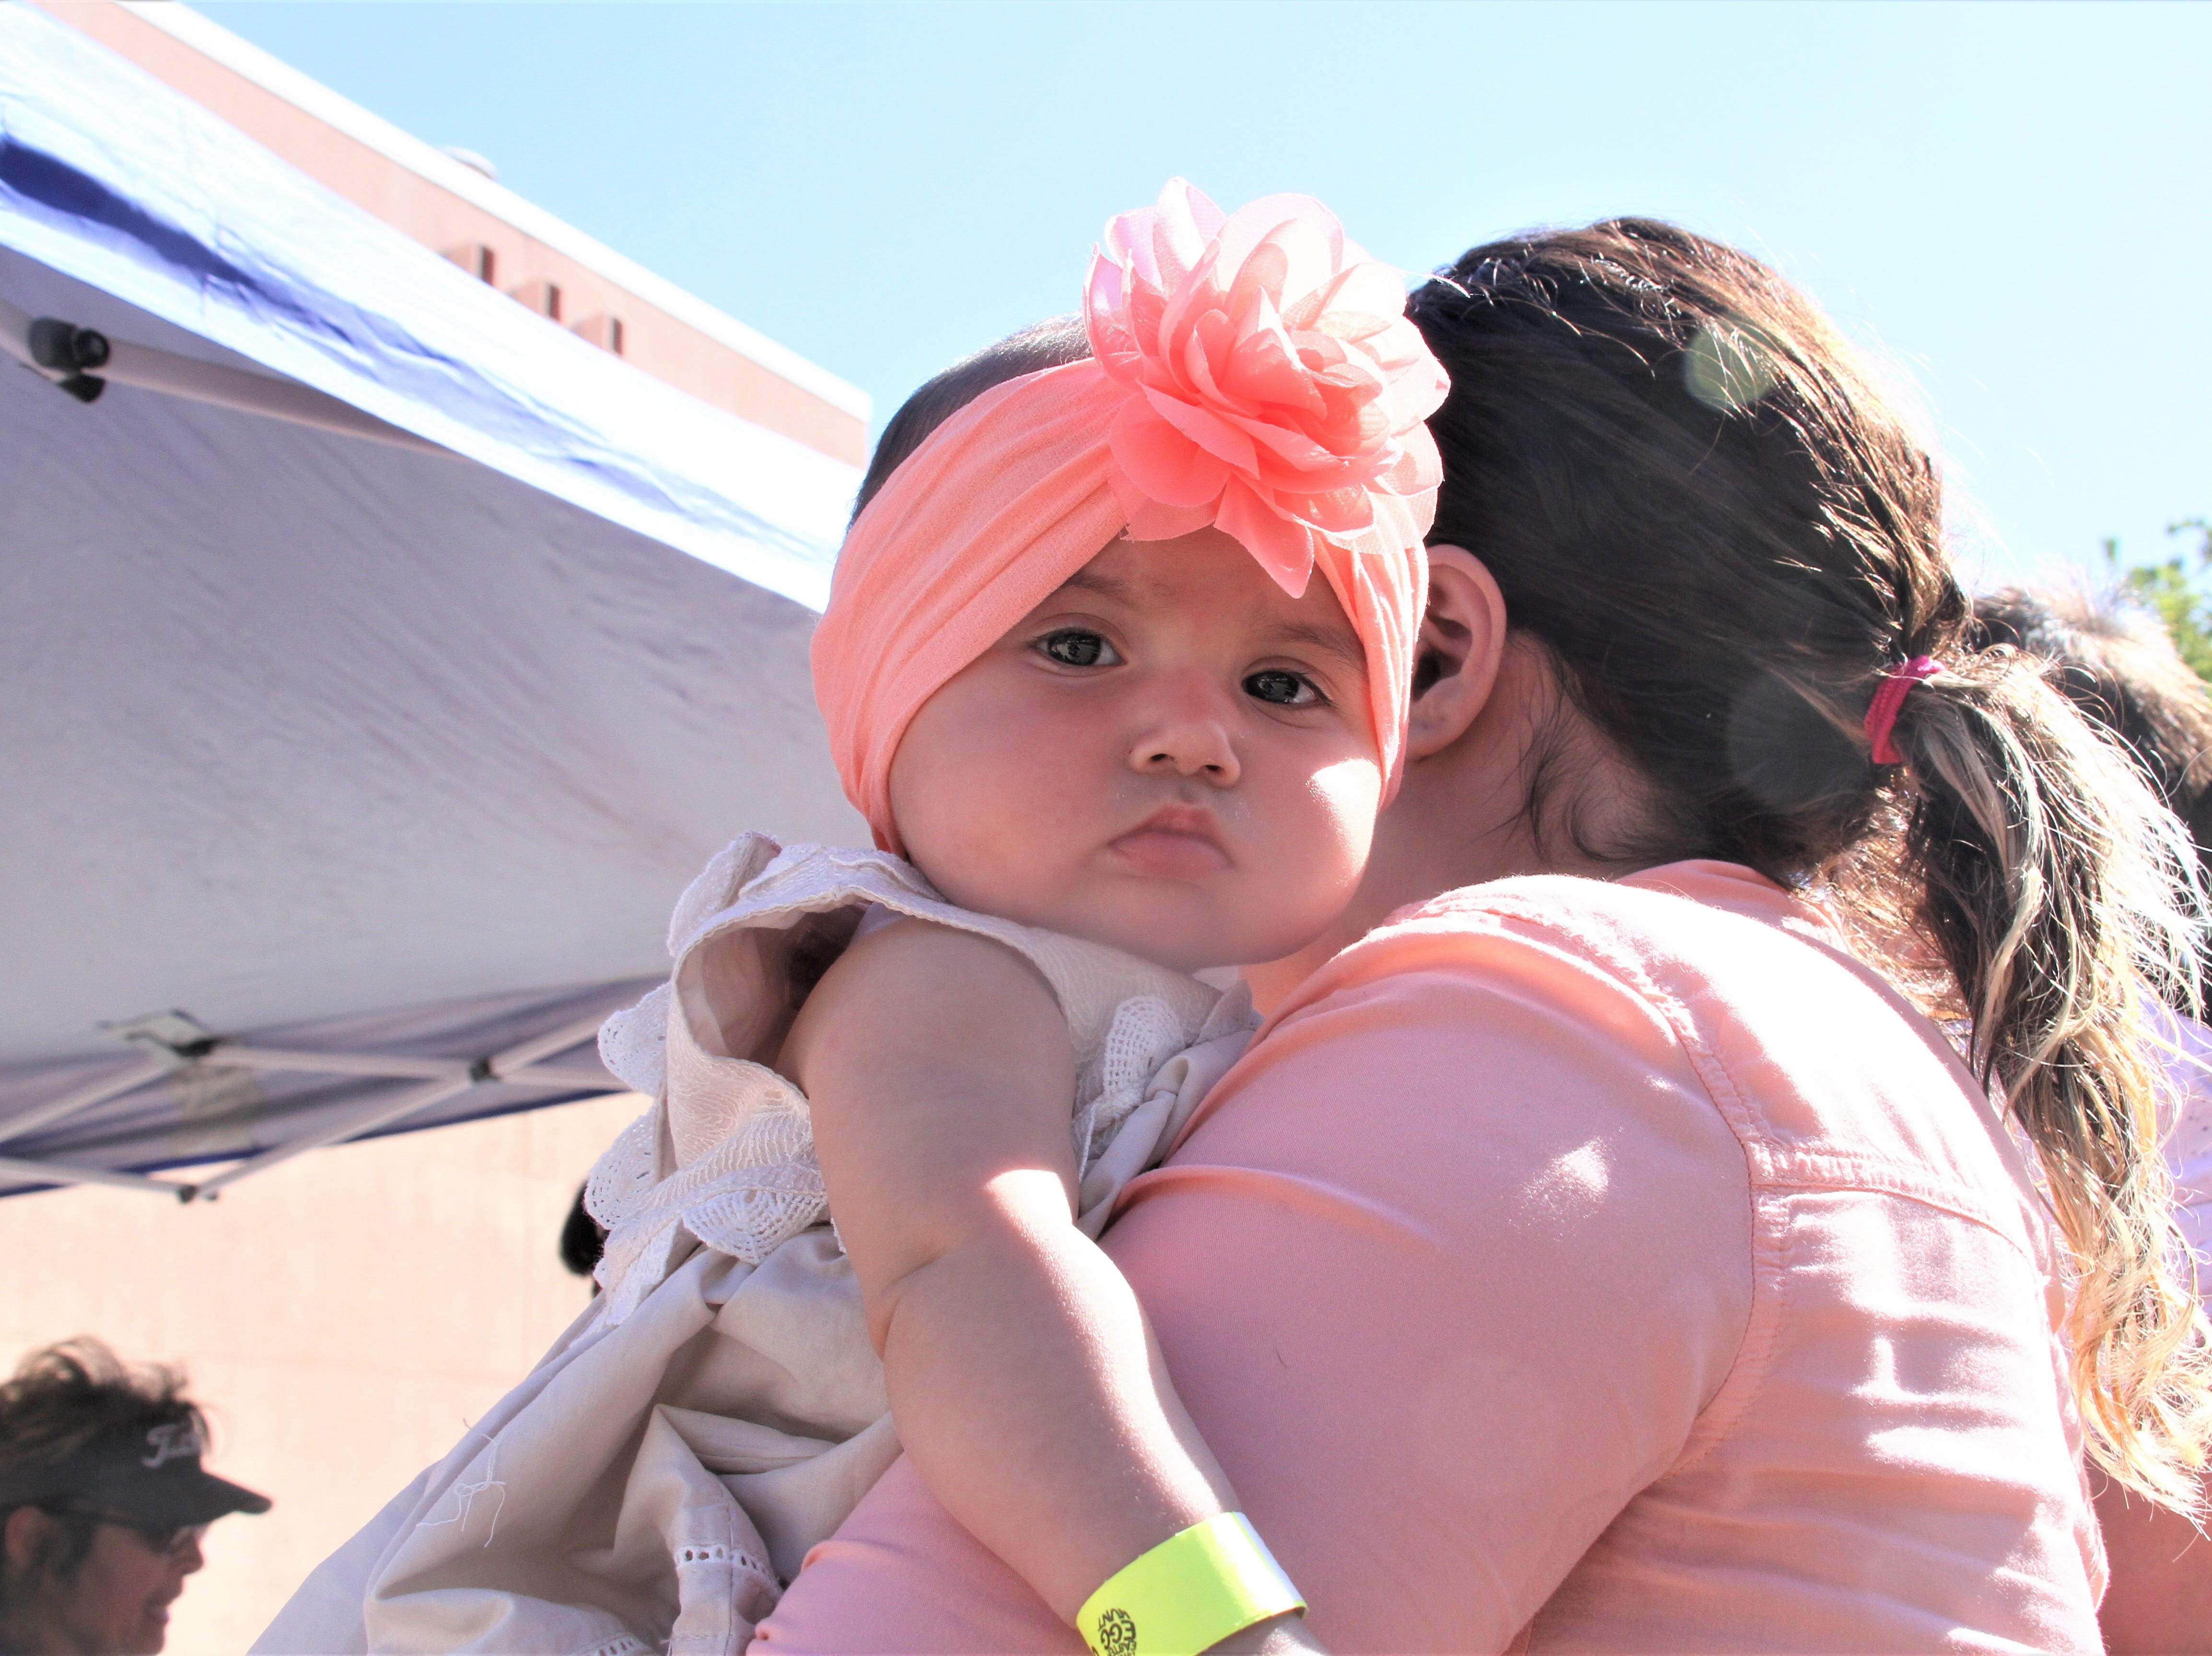 6-month-old Cambria Thompson. Cambria's mother is waiting to register her at the registration booth.